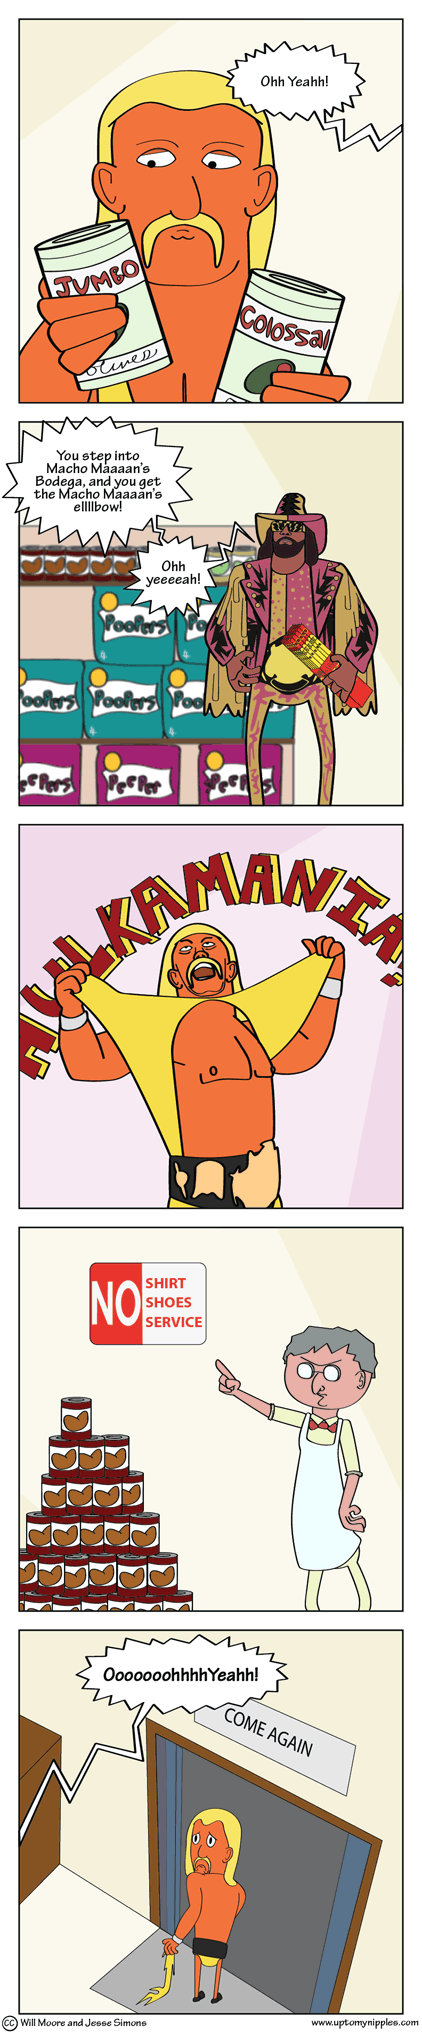 Hulkamania comic